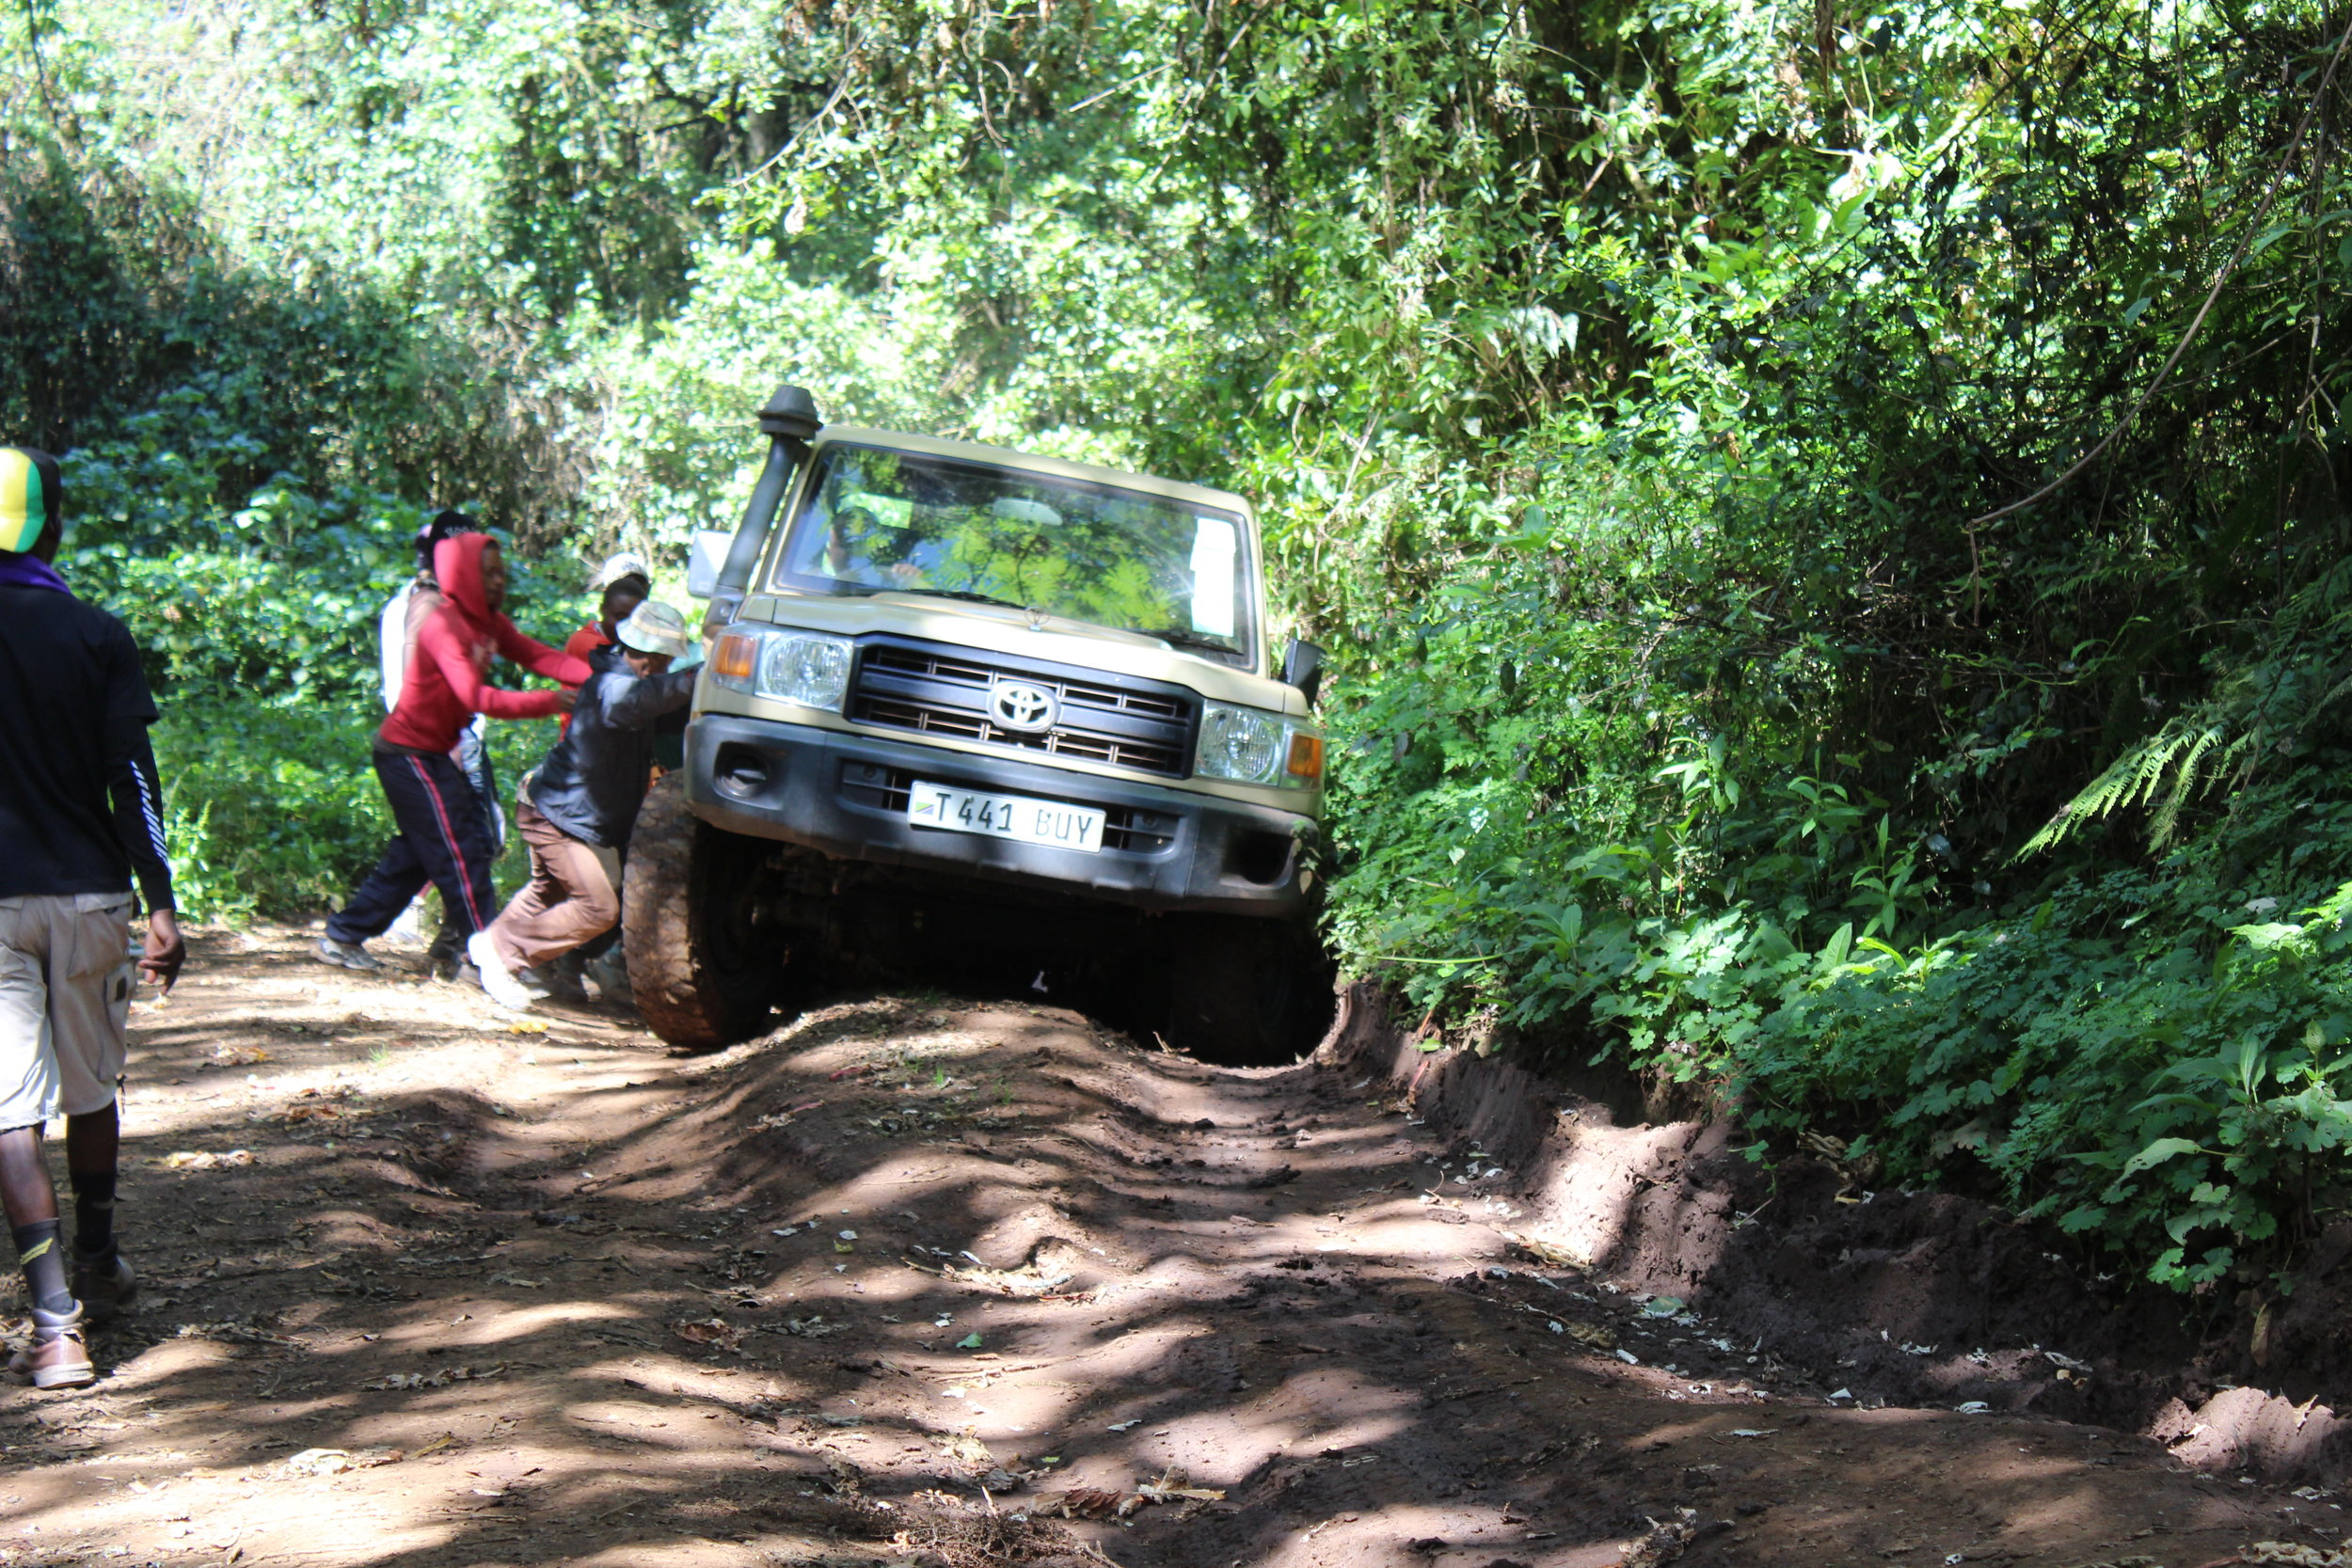 Our truck got stuck on our way to the Lemosho Gate.